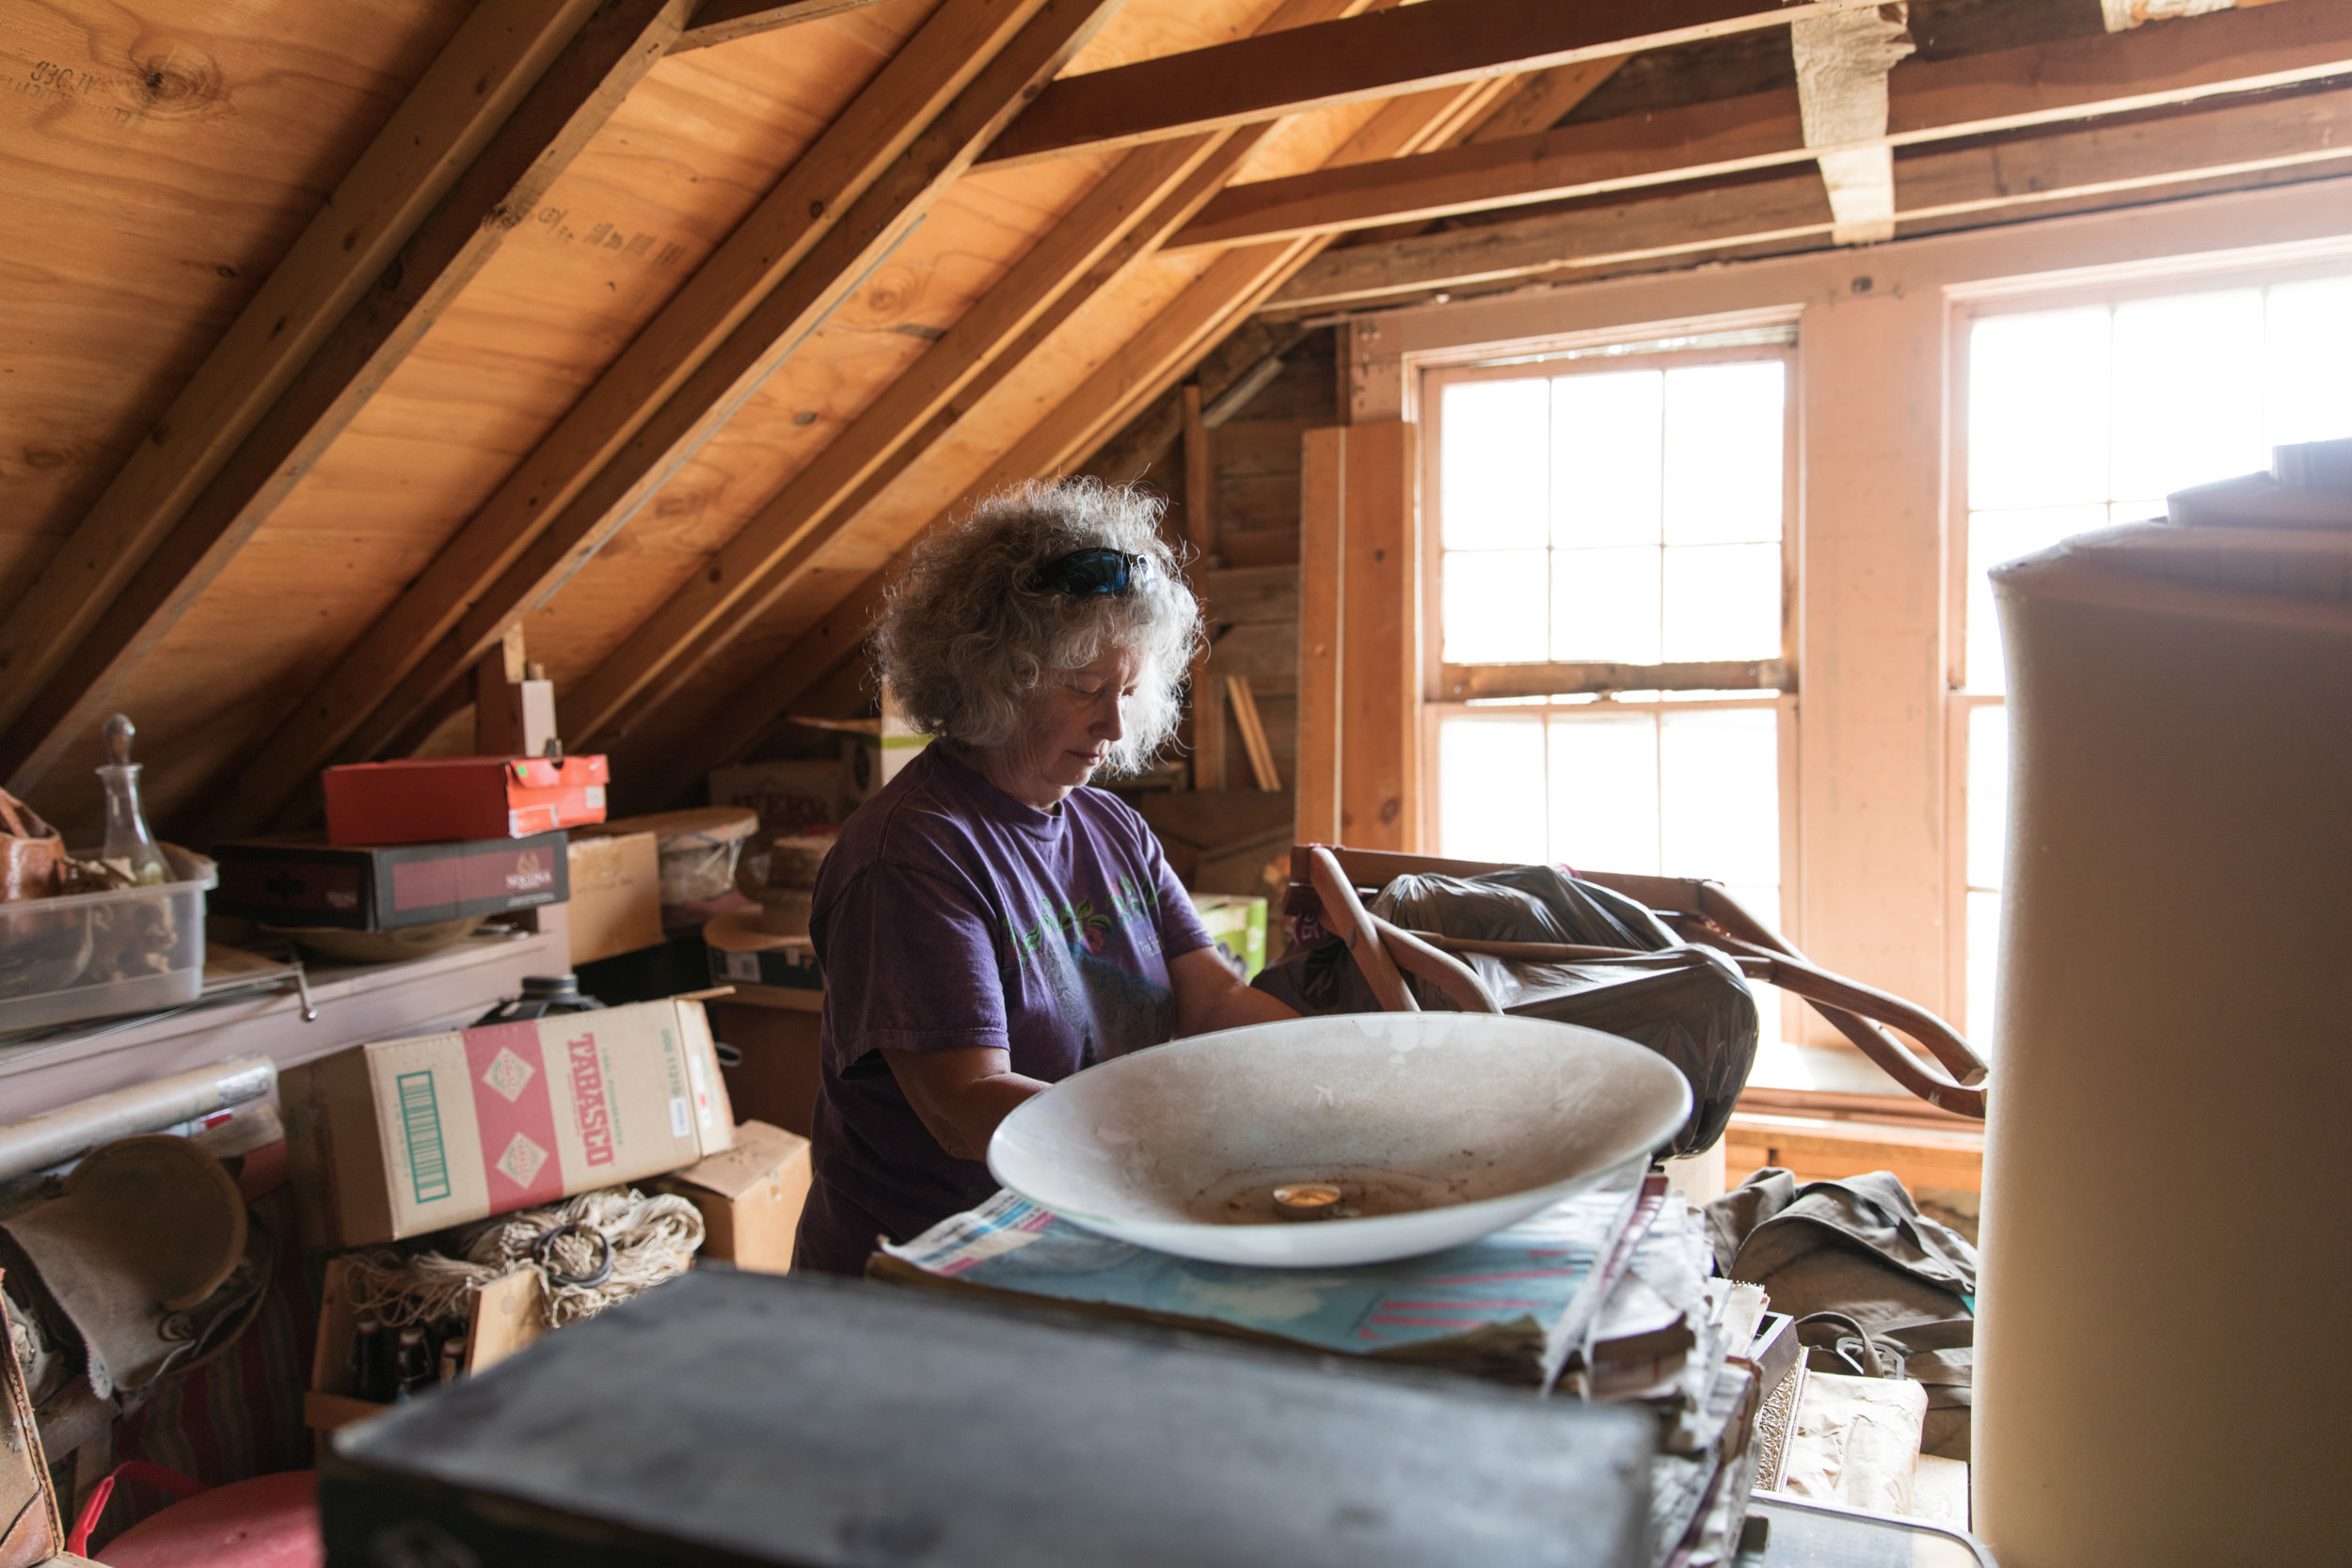 Zita Coombs, Grand-daughter to Great Grandma Zita, digging through items in the ranch headquarters.